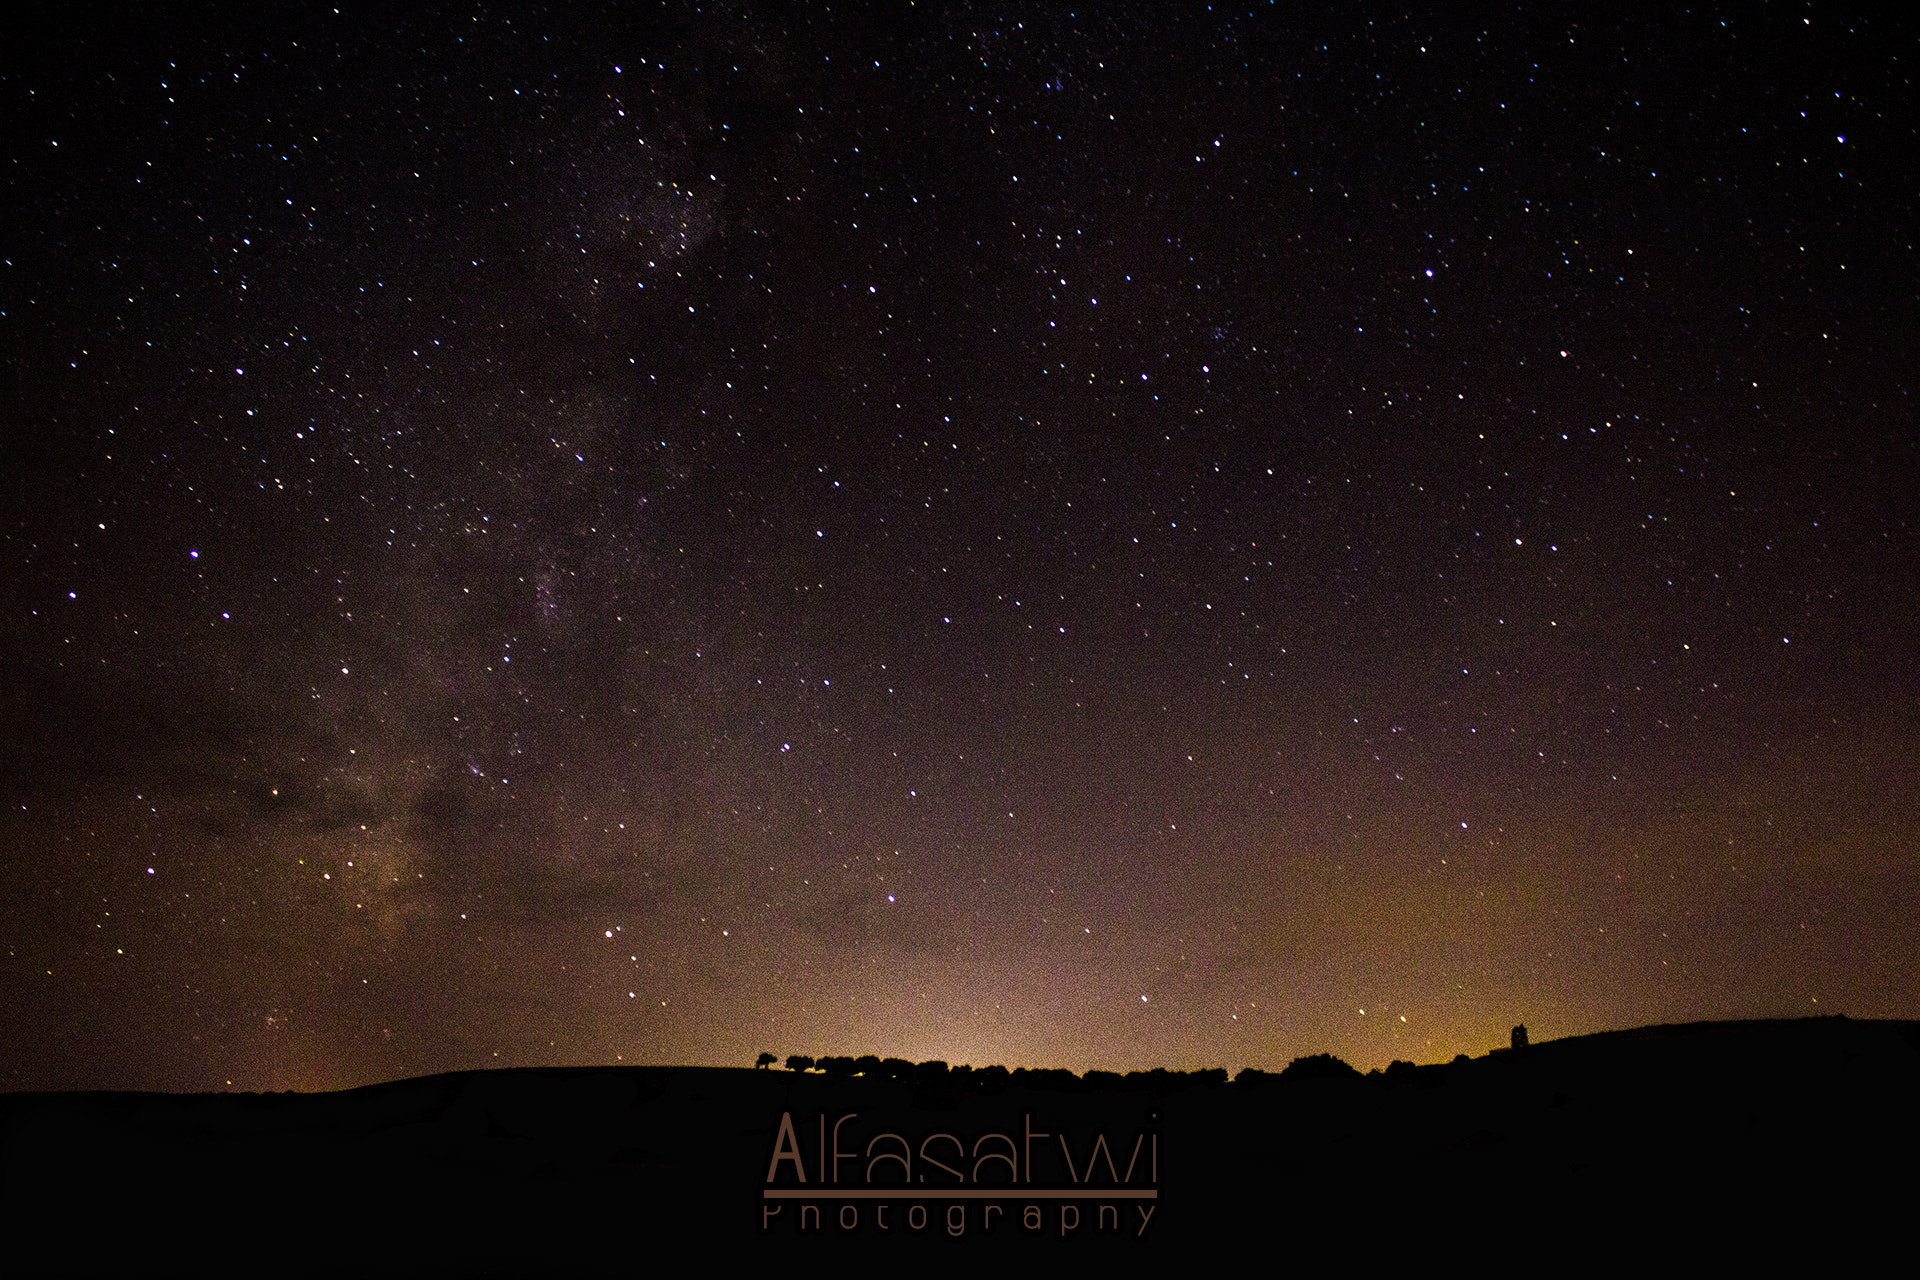 Photograph Stars in Jadu. by Ahmed Alfasatwi on 500px